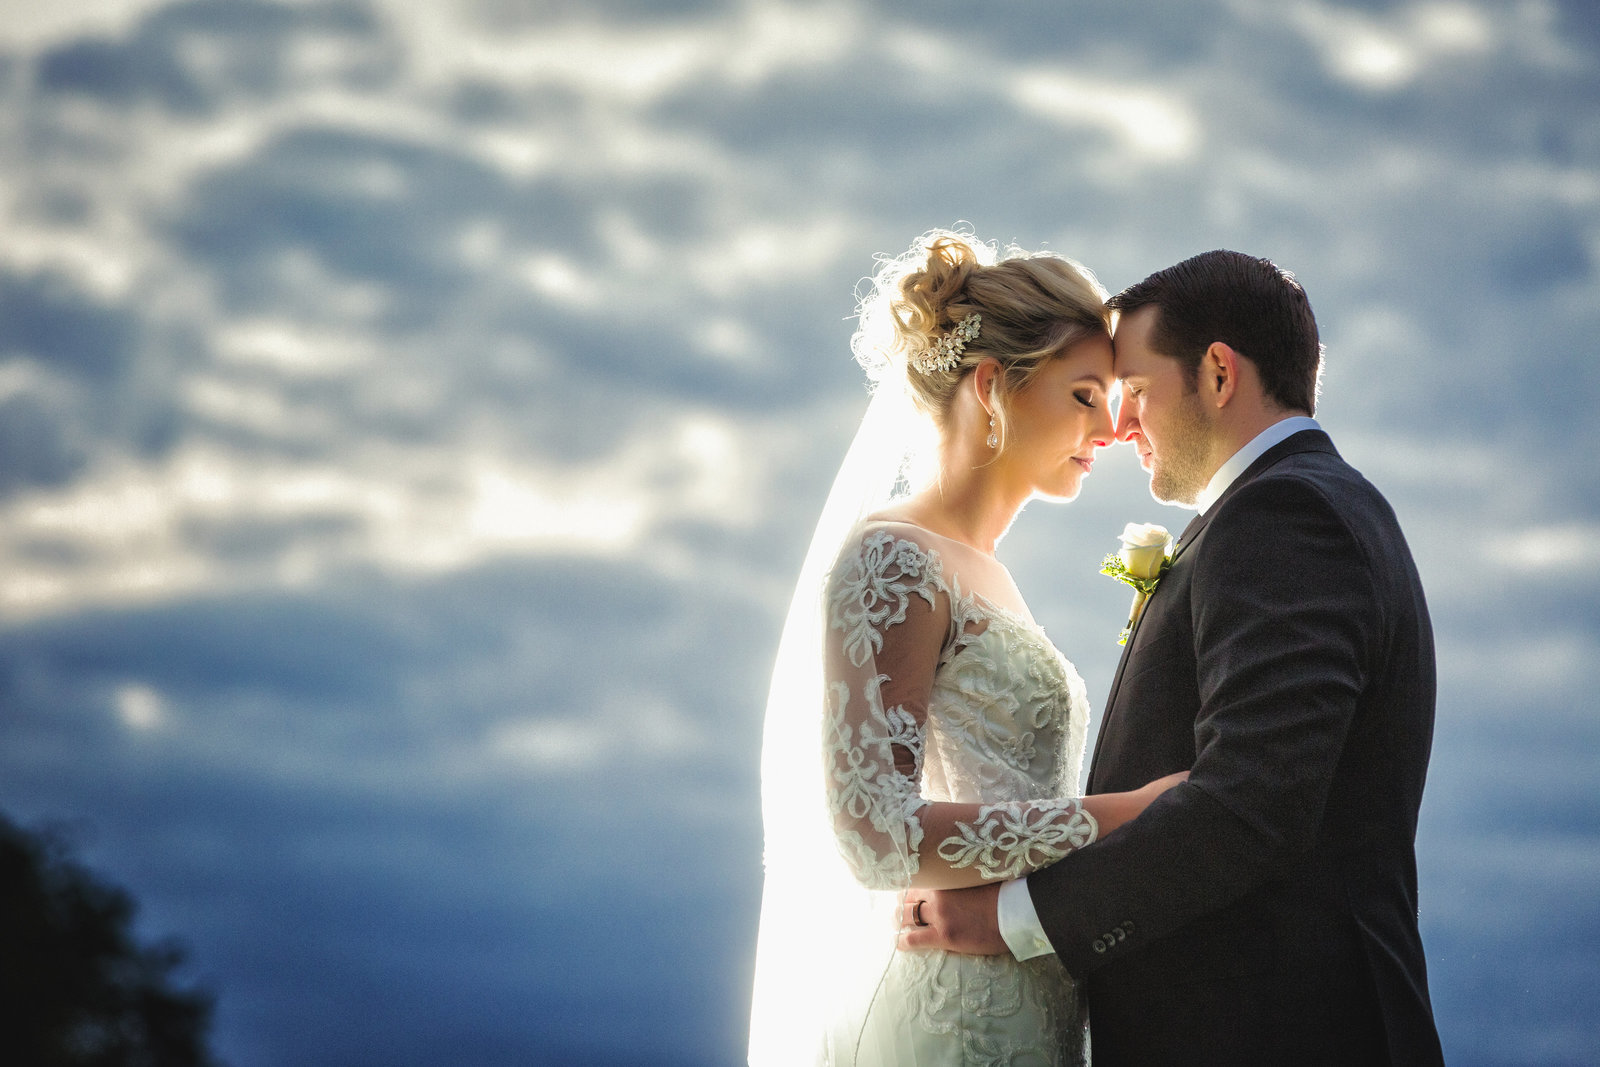 bride and groom romantics  with epic clouds in the background